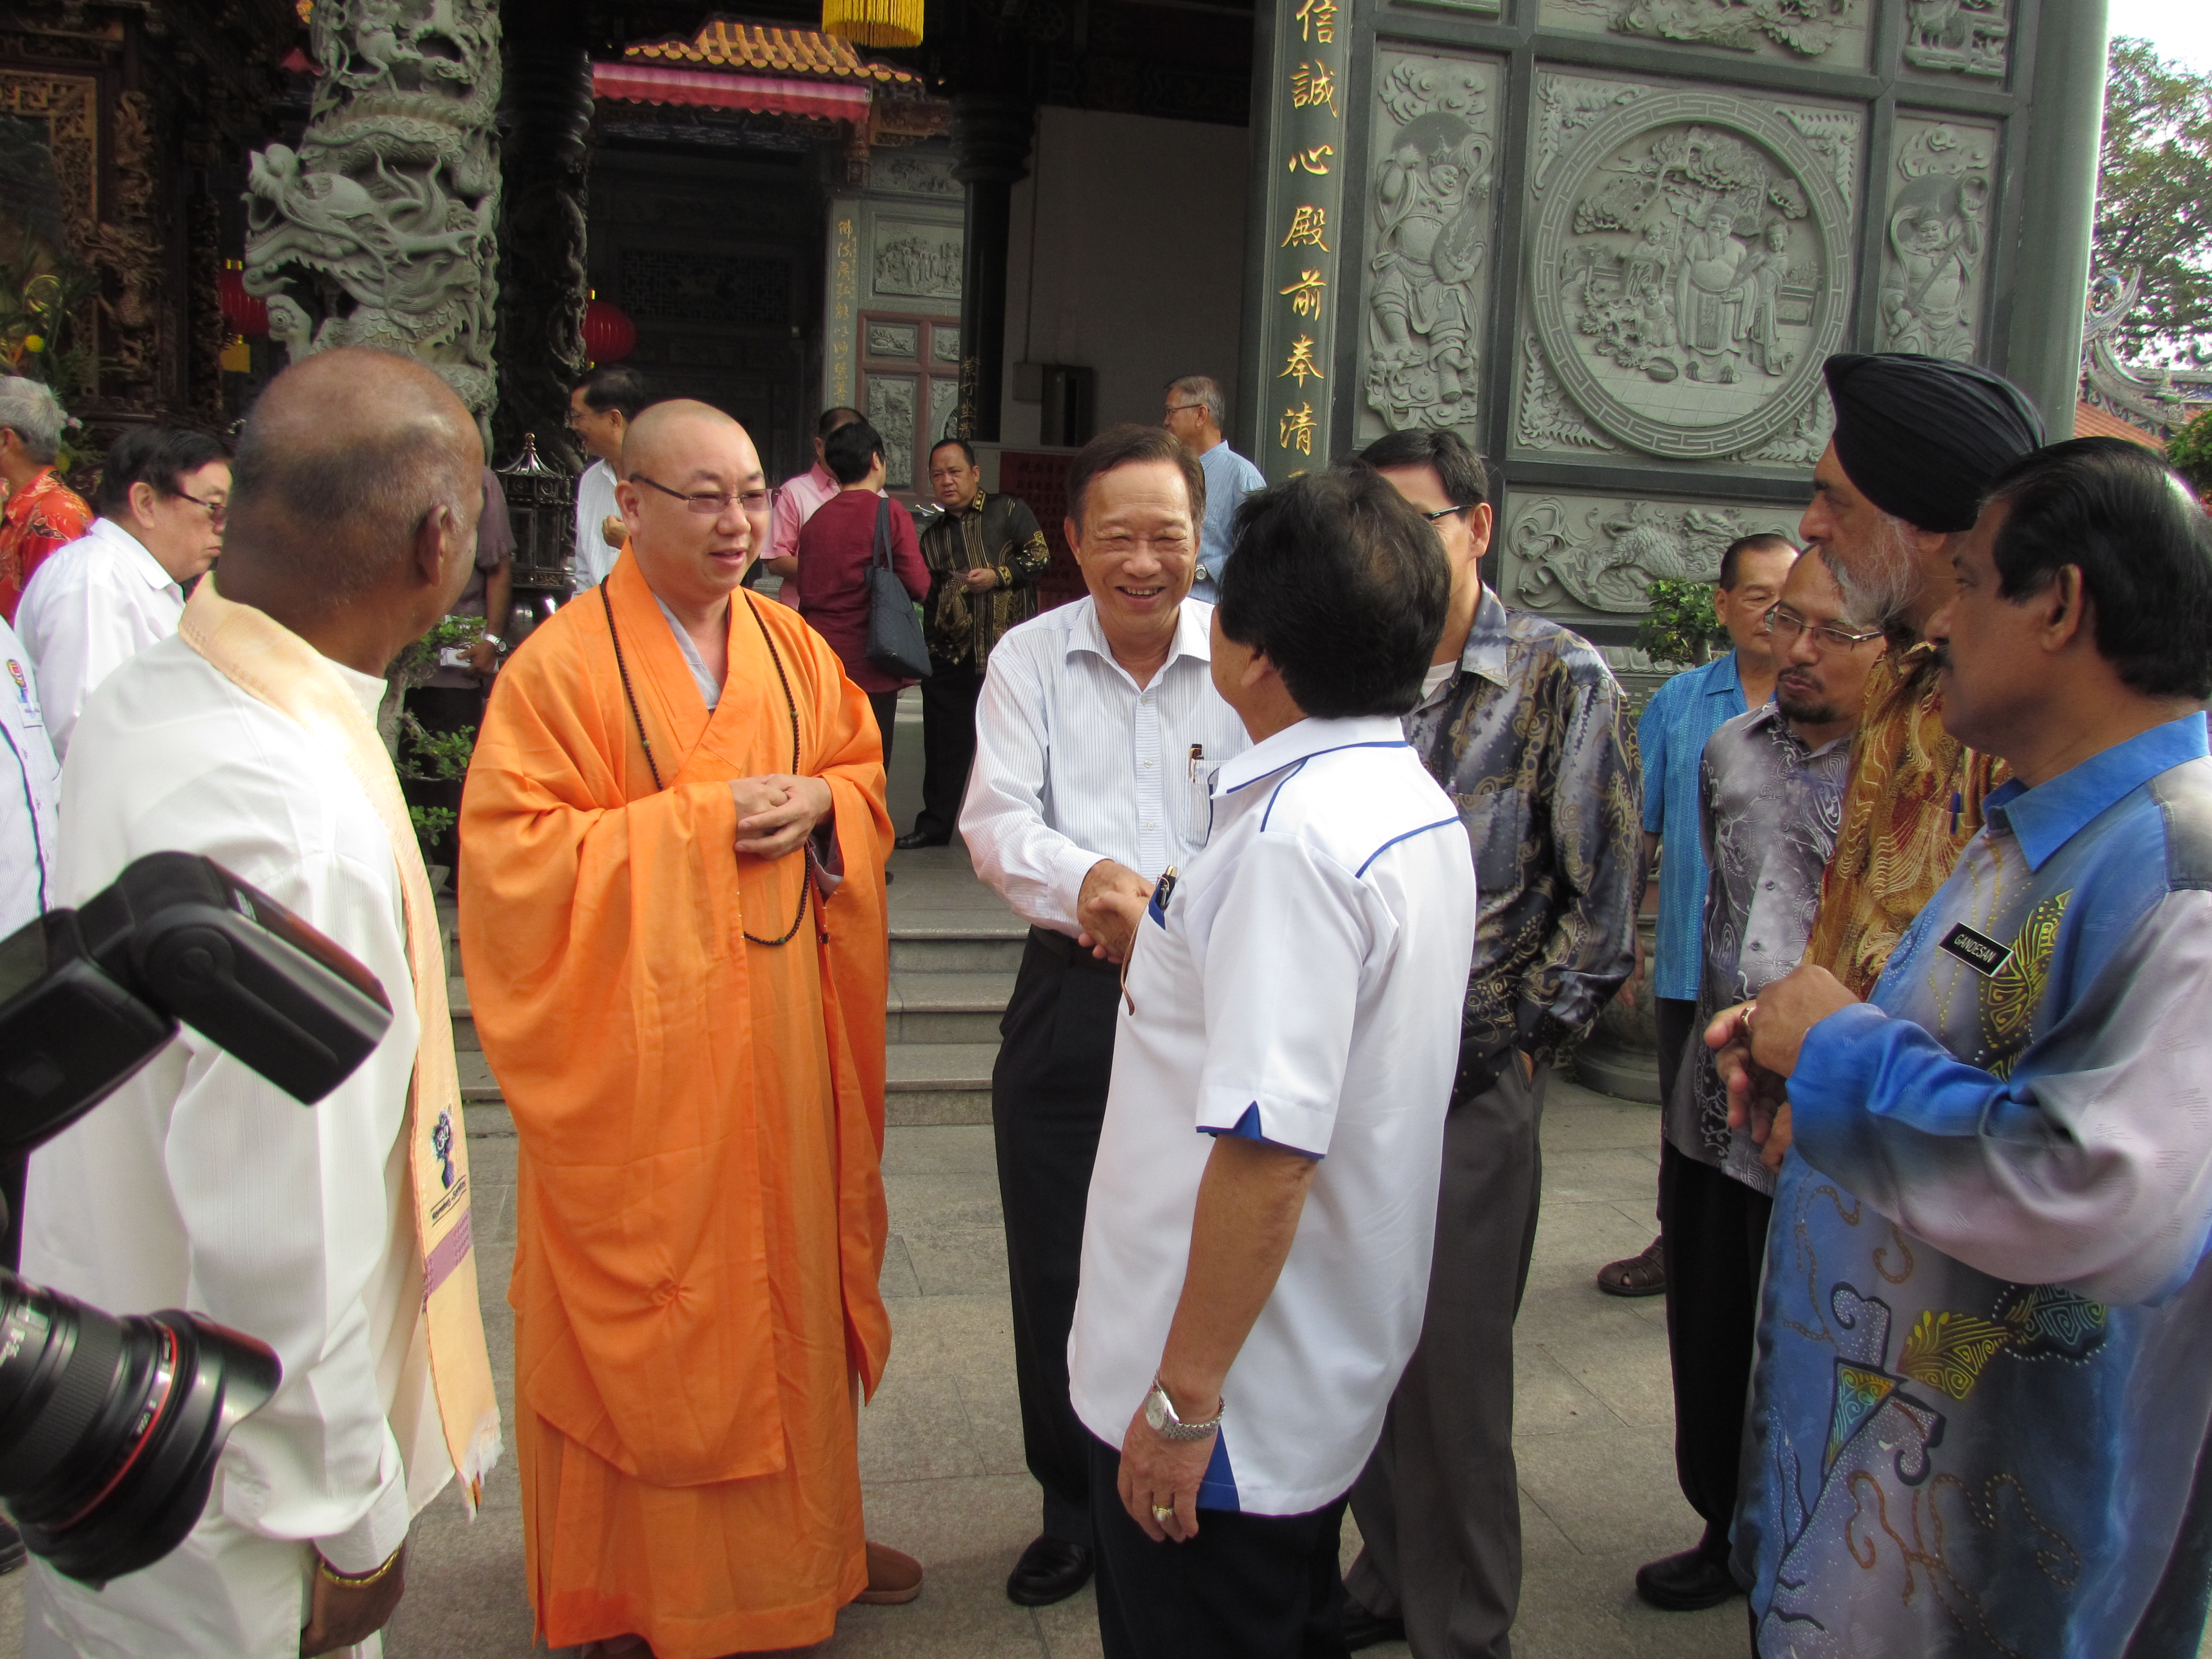 JKMPKA members and Minister Tan Sri Joseph Kurup arriving at Buddhist Temple for WIHW 2015 program in Klang.JPG